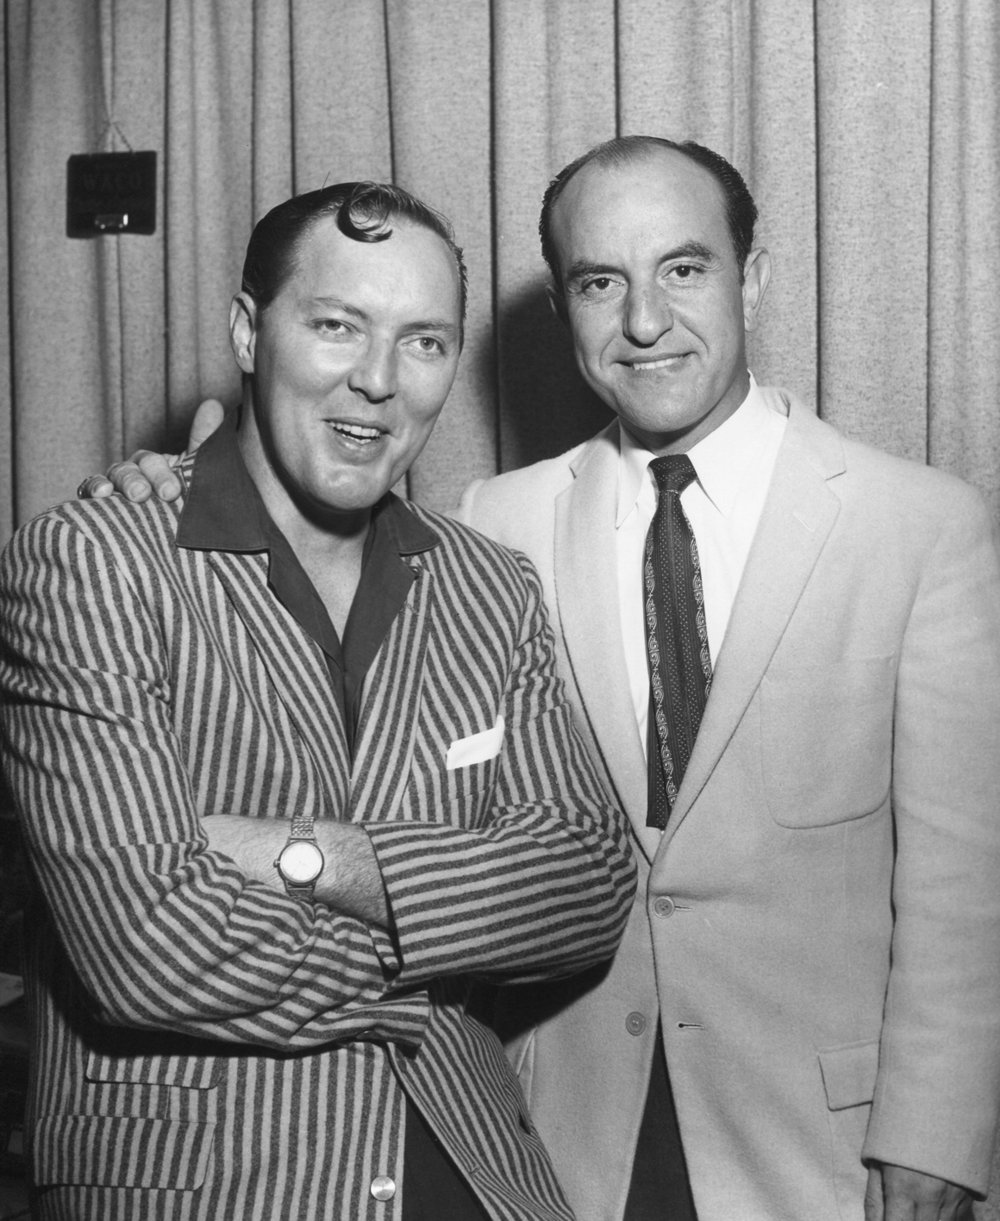 Bill Haley & Eddie